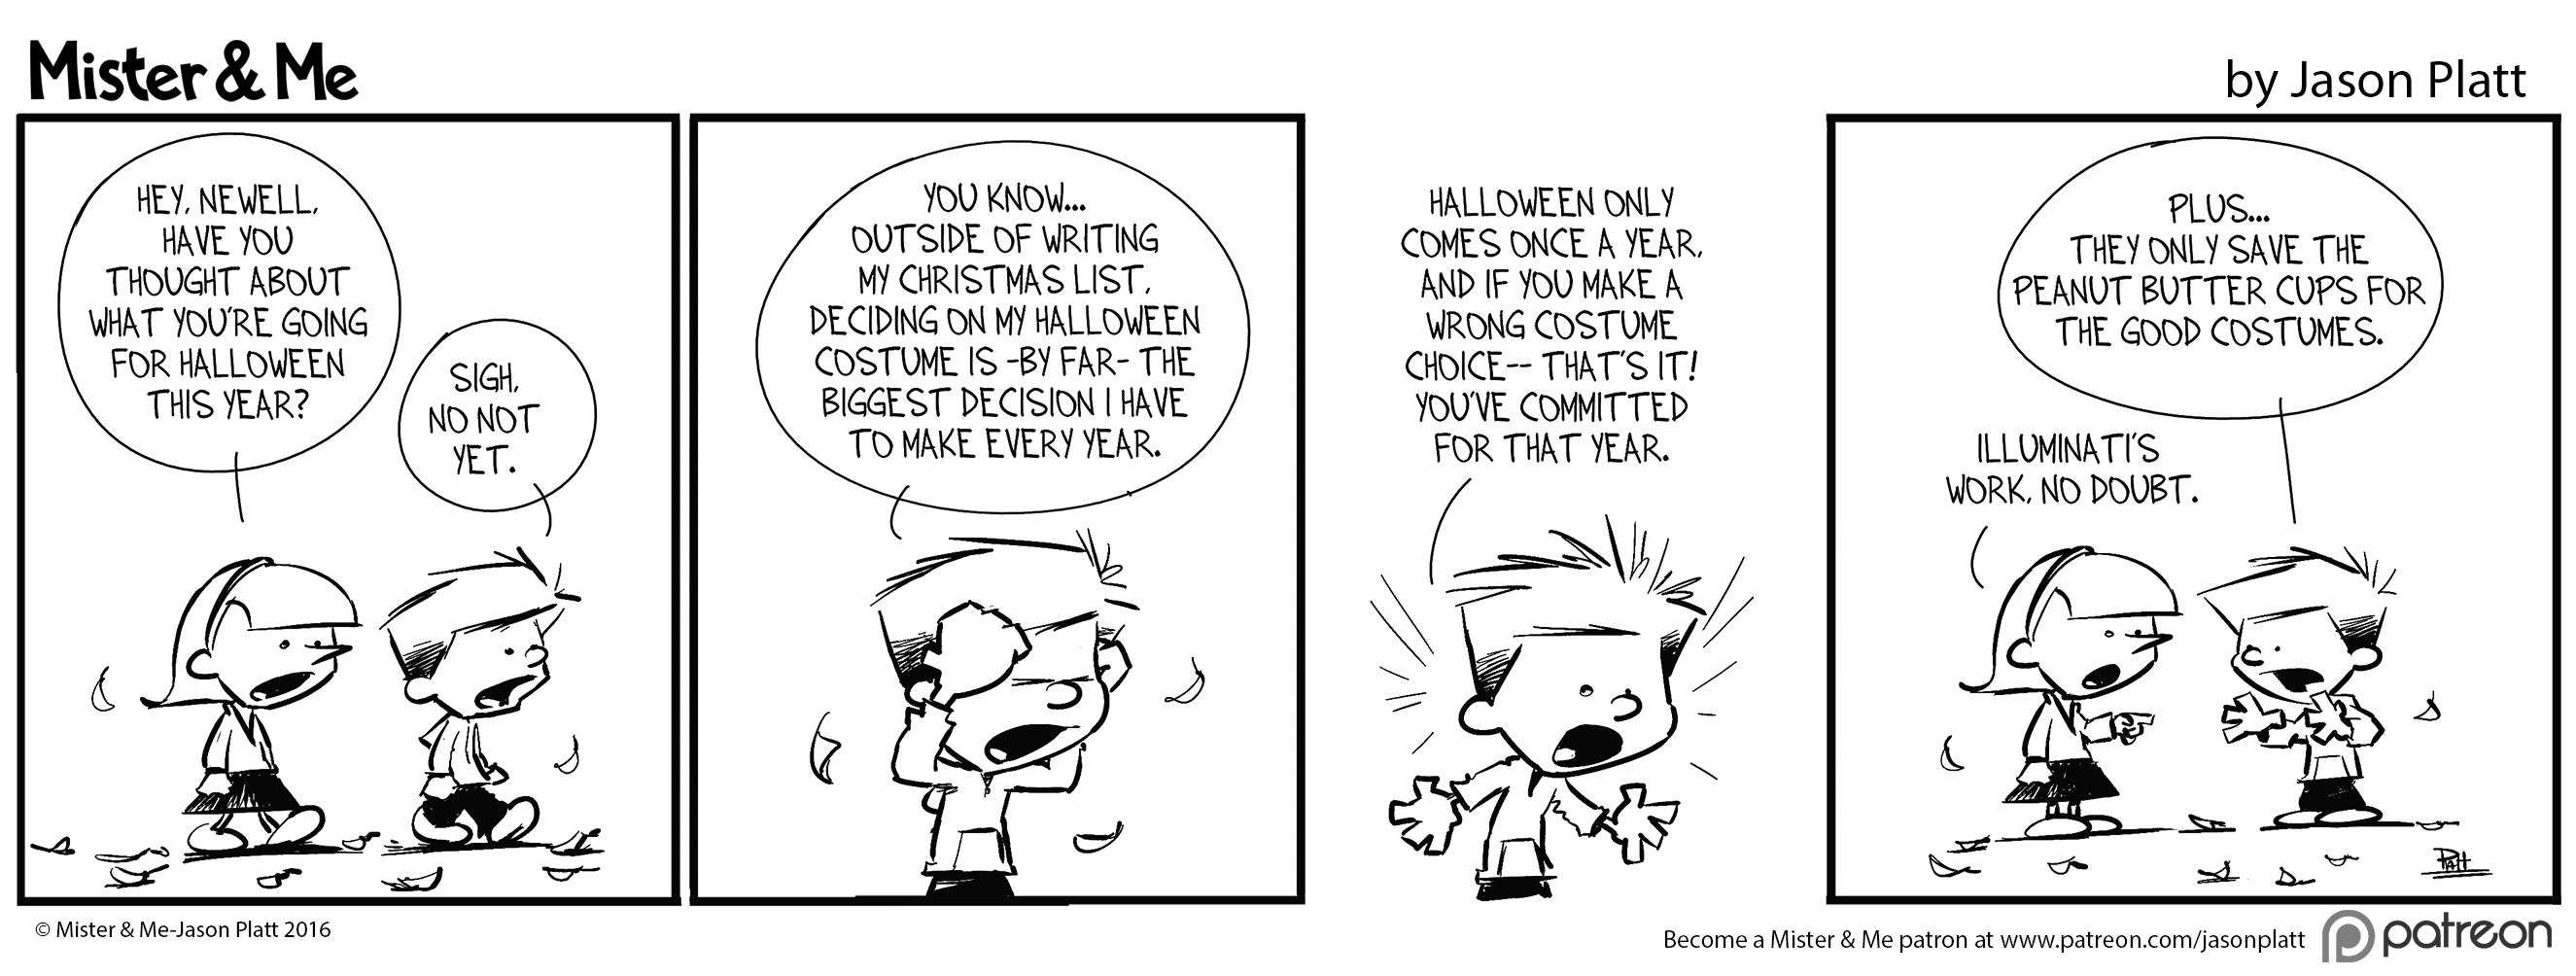 Gearing Up for Halloween